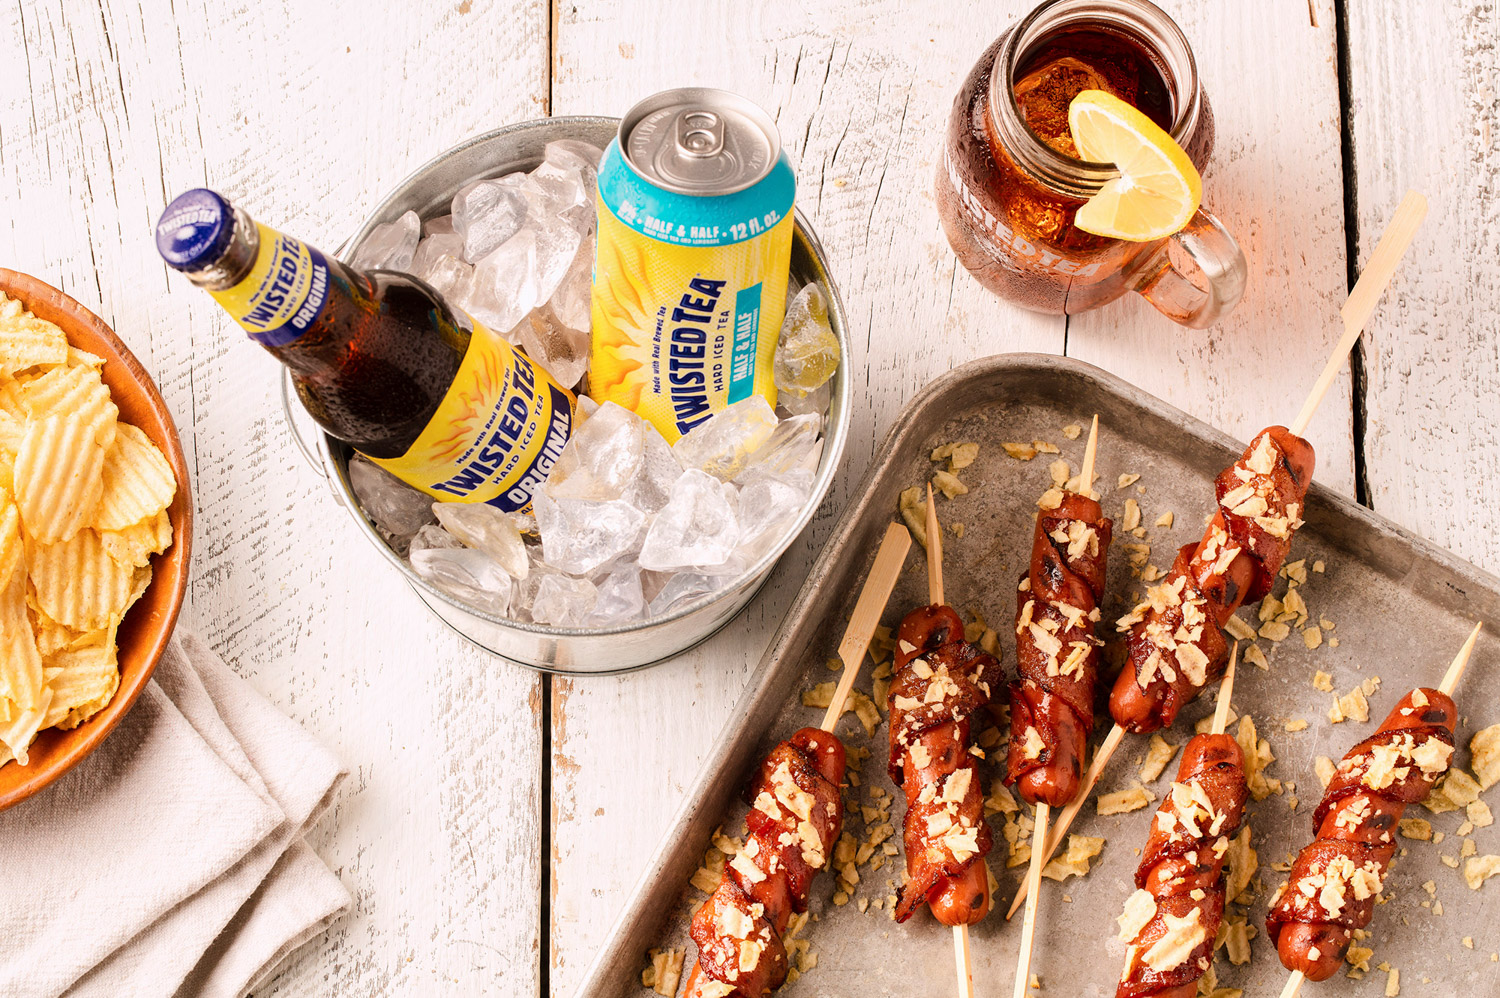 Emily_Kan_Boston_Advertising_ Food_Photographer_Twisted_Tea_Boston_Beer_Company_ 2.jpg